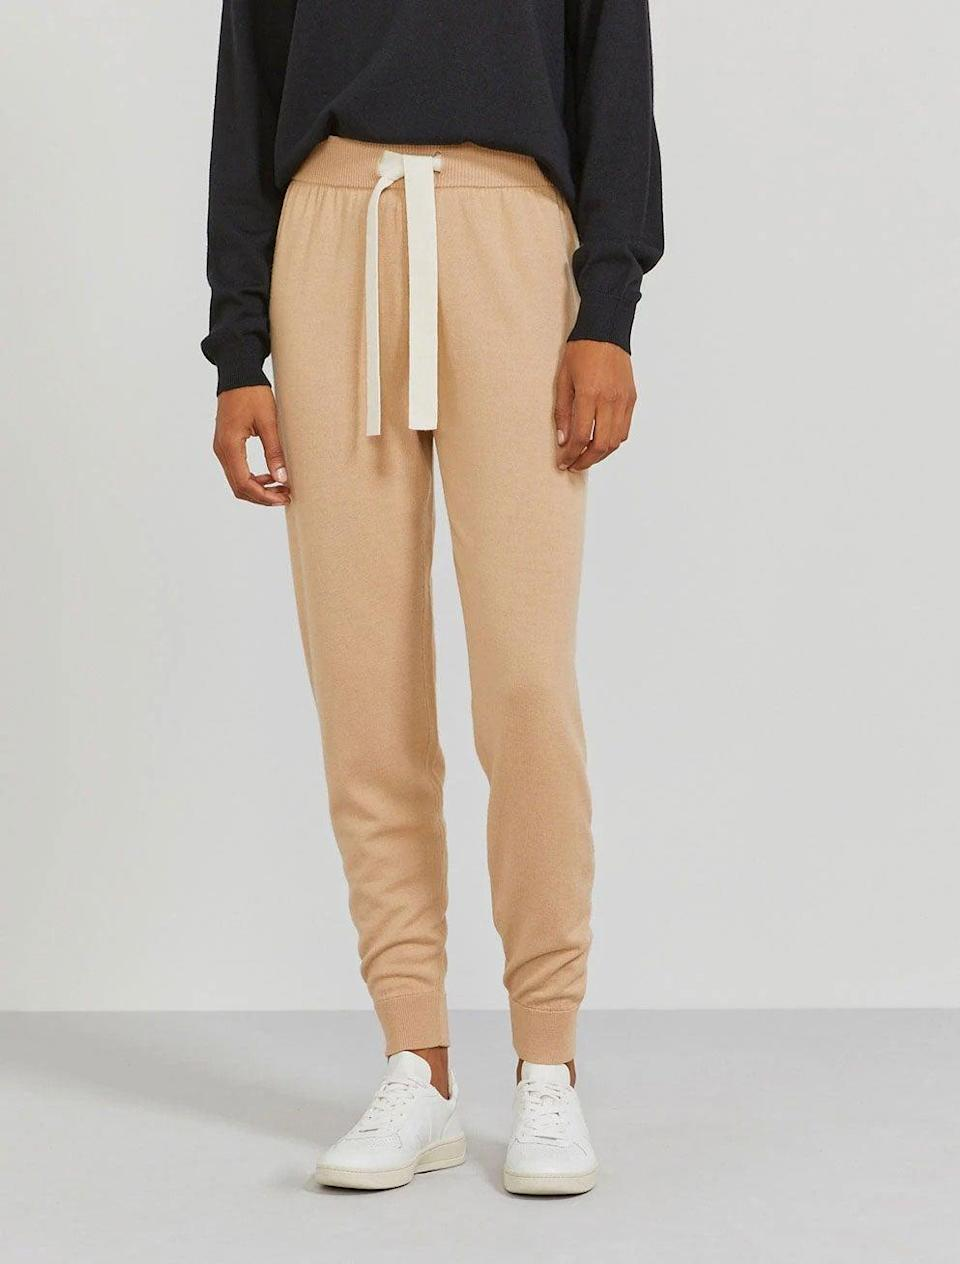 """<br><br><strong>Ninety Percent</strong> Merino Wool Boy-fit Trackpant, $, available at <a href=""""https://ninetypercent.com/collections/loungewear/products/merino-boyfit-trackpant"""" rel=""""nofollow noopener"""" target=""""_blank"""" data-ylk=""""slk:Ninety Percent"""" class=""""link rapid-noclick-resp"""">Ninety Percent</a>"""